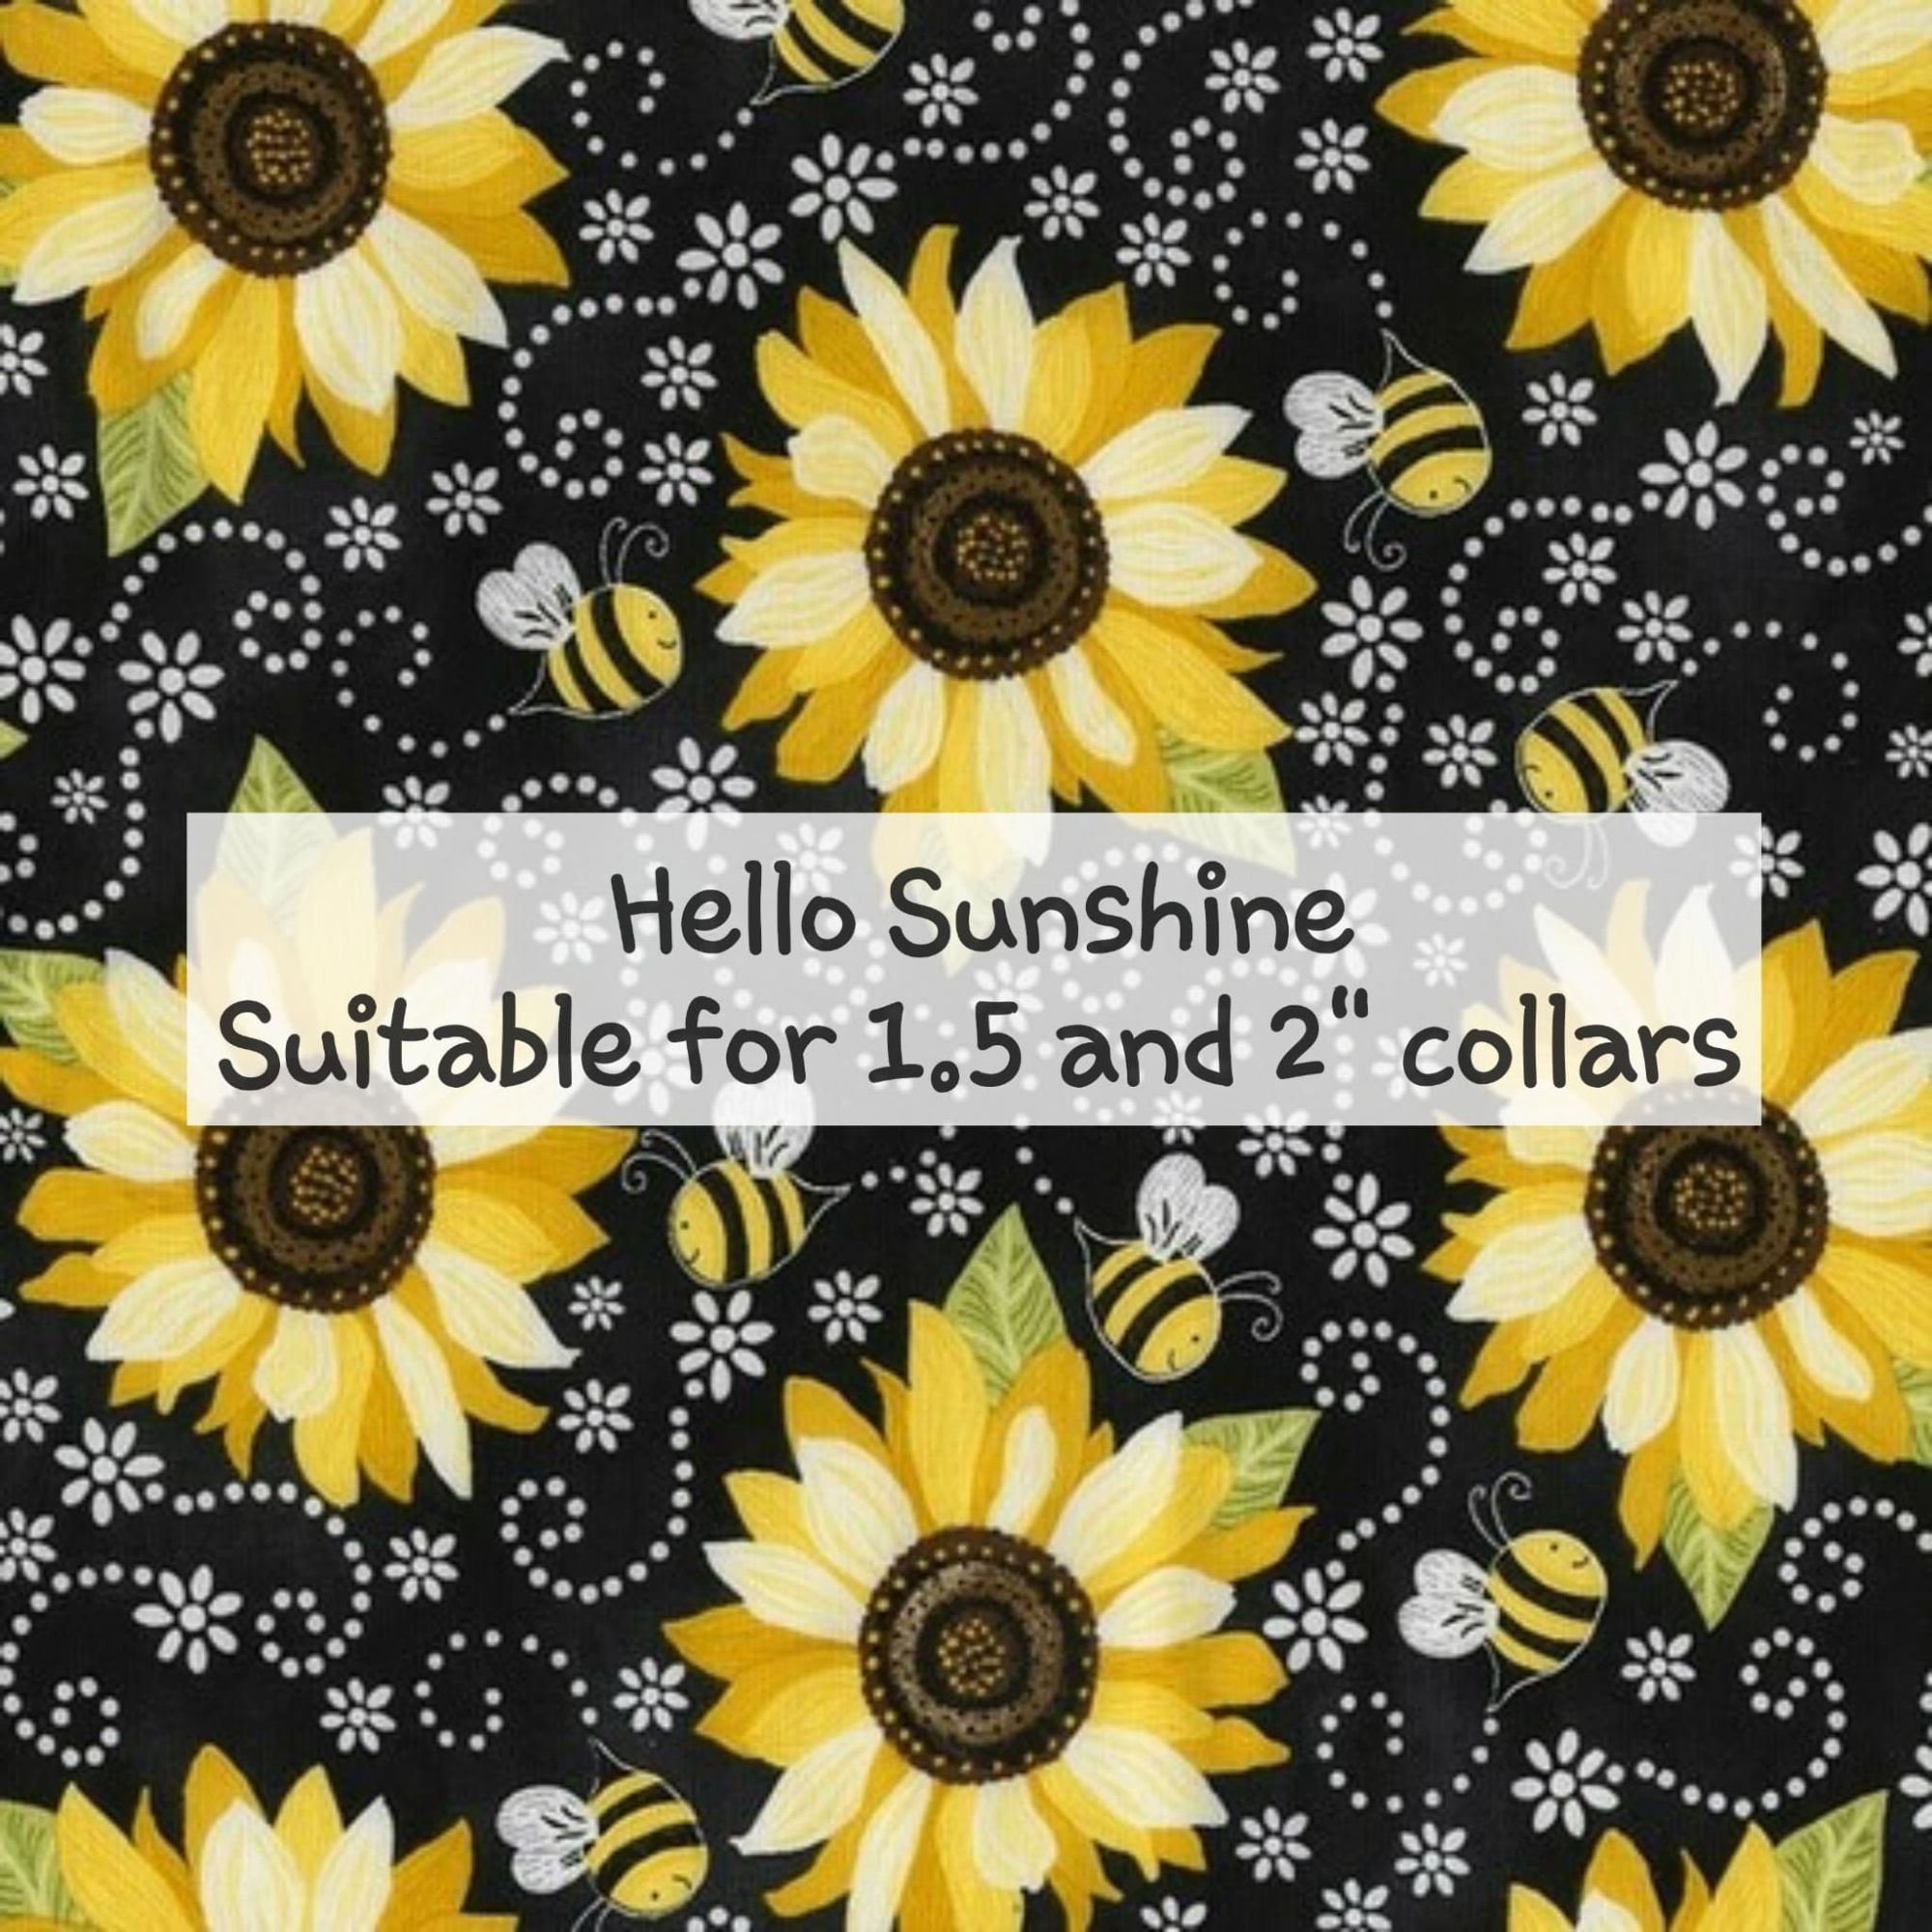 Hello Sunshine - Sutiable for 1.5 and 2 inch collars